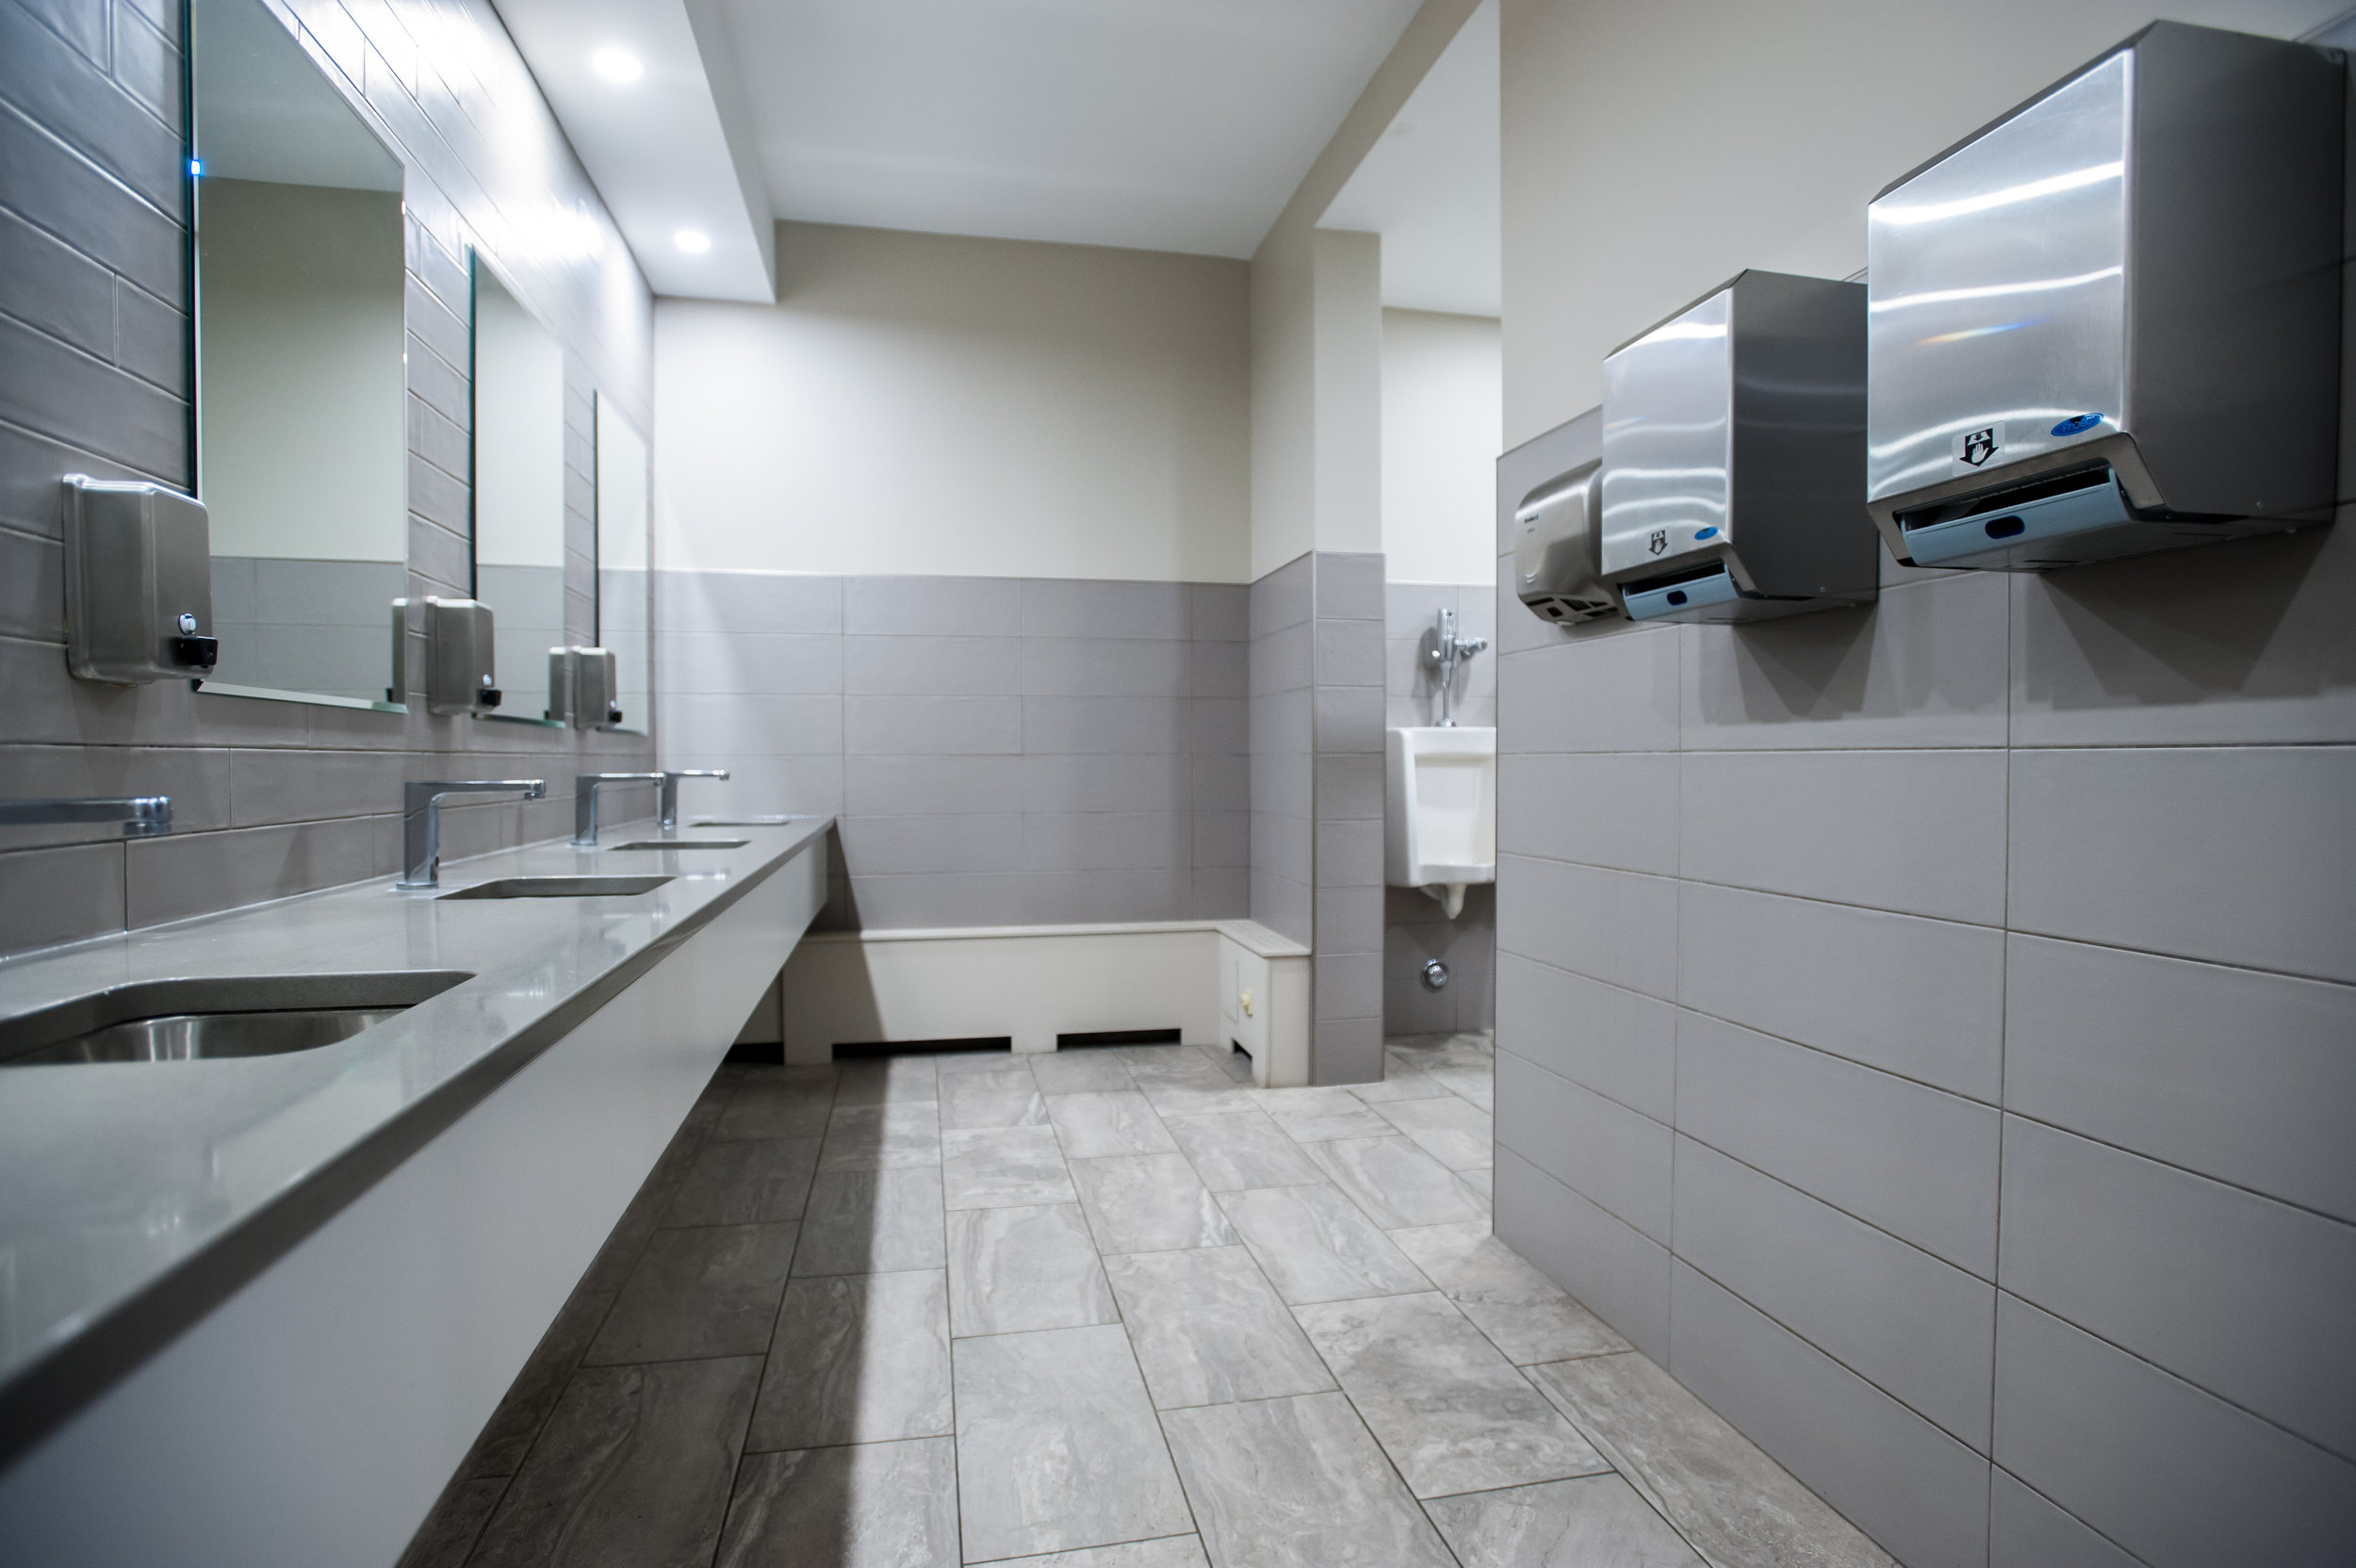 Commercial Floor & Wall Tile